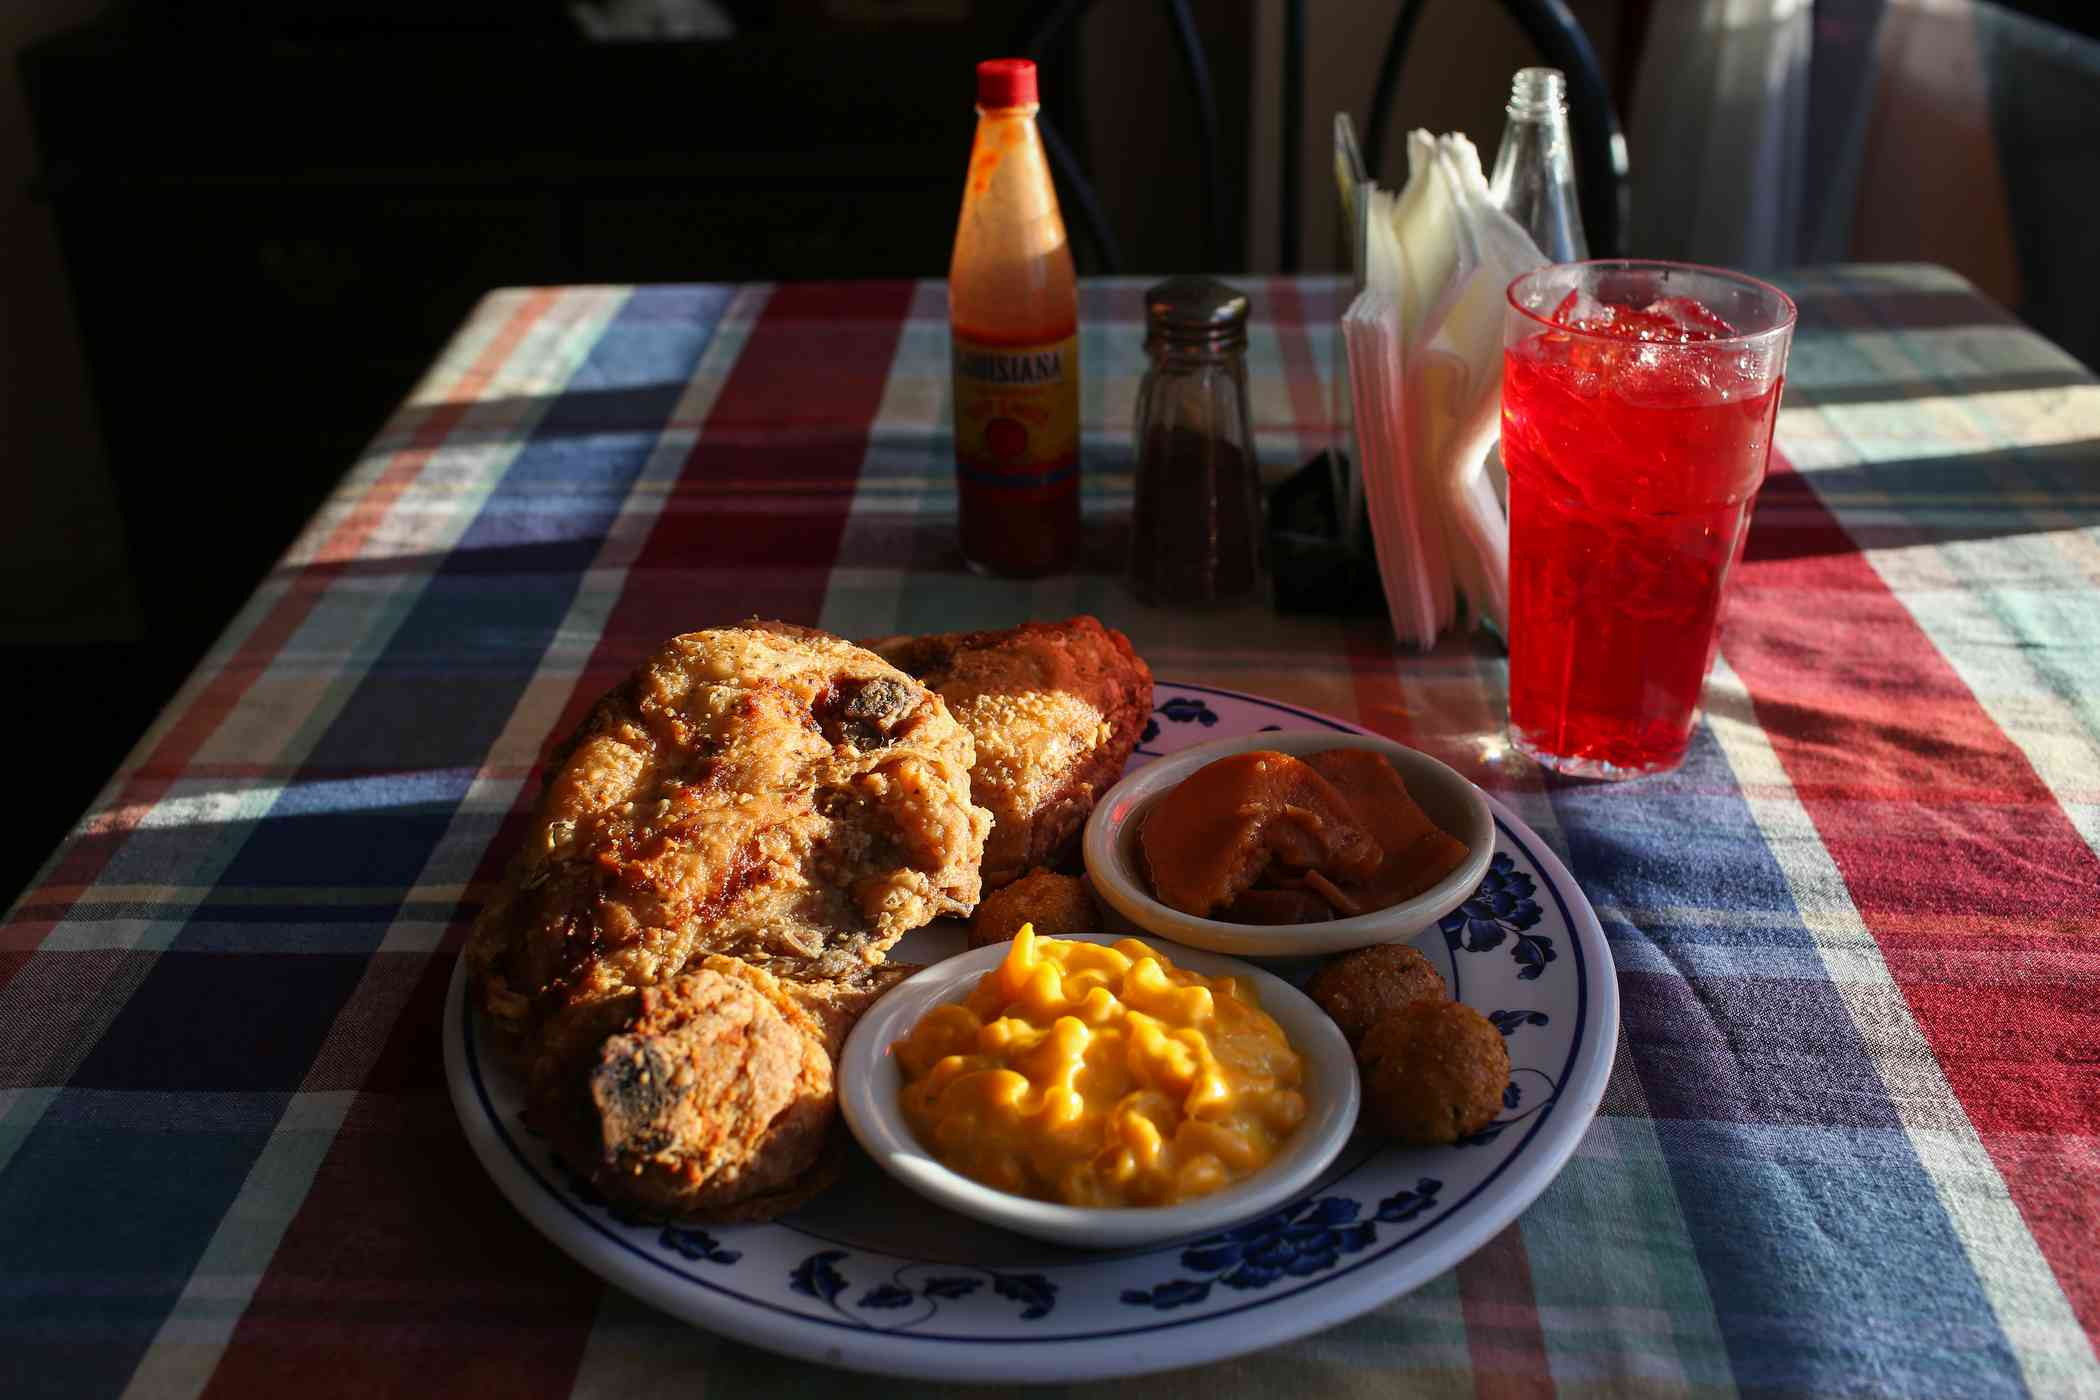 A plate with fried chicken and sides with a red soda